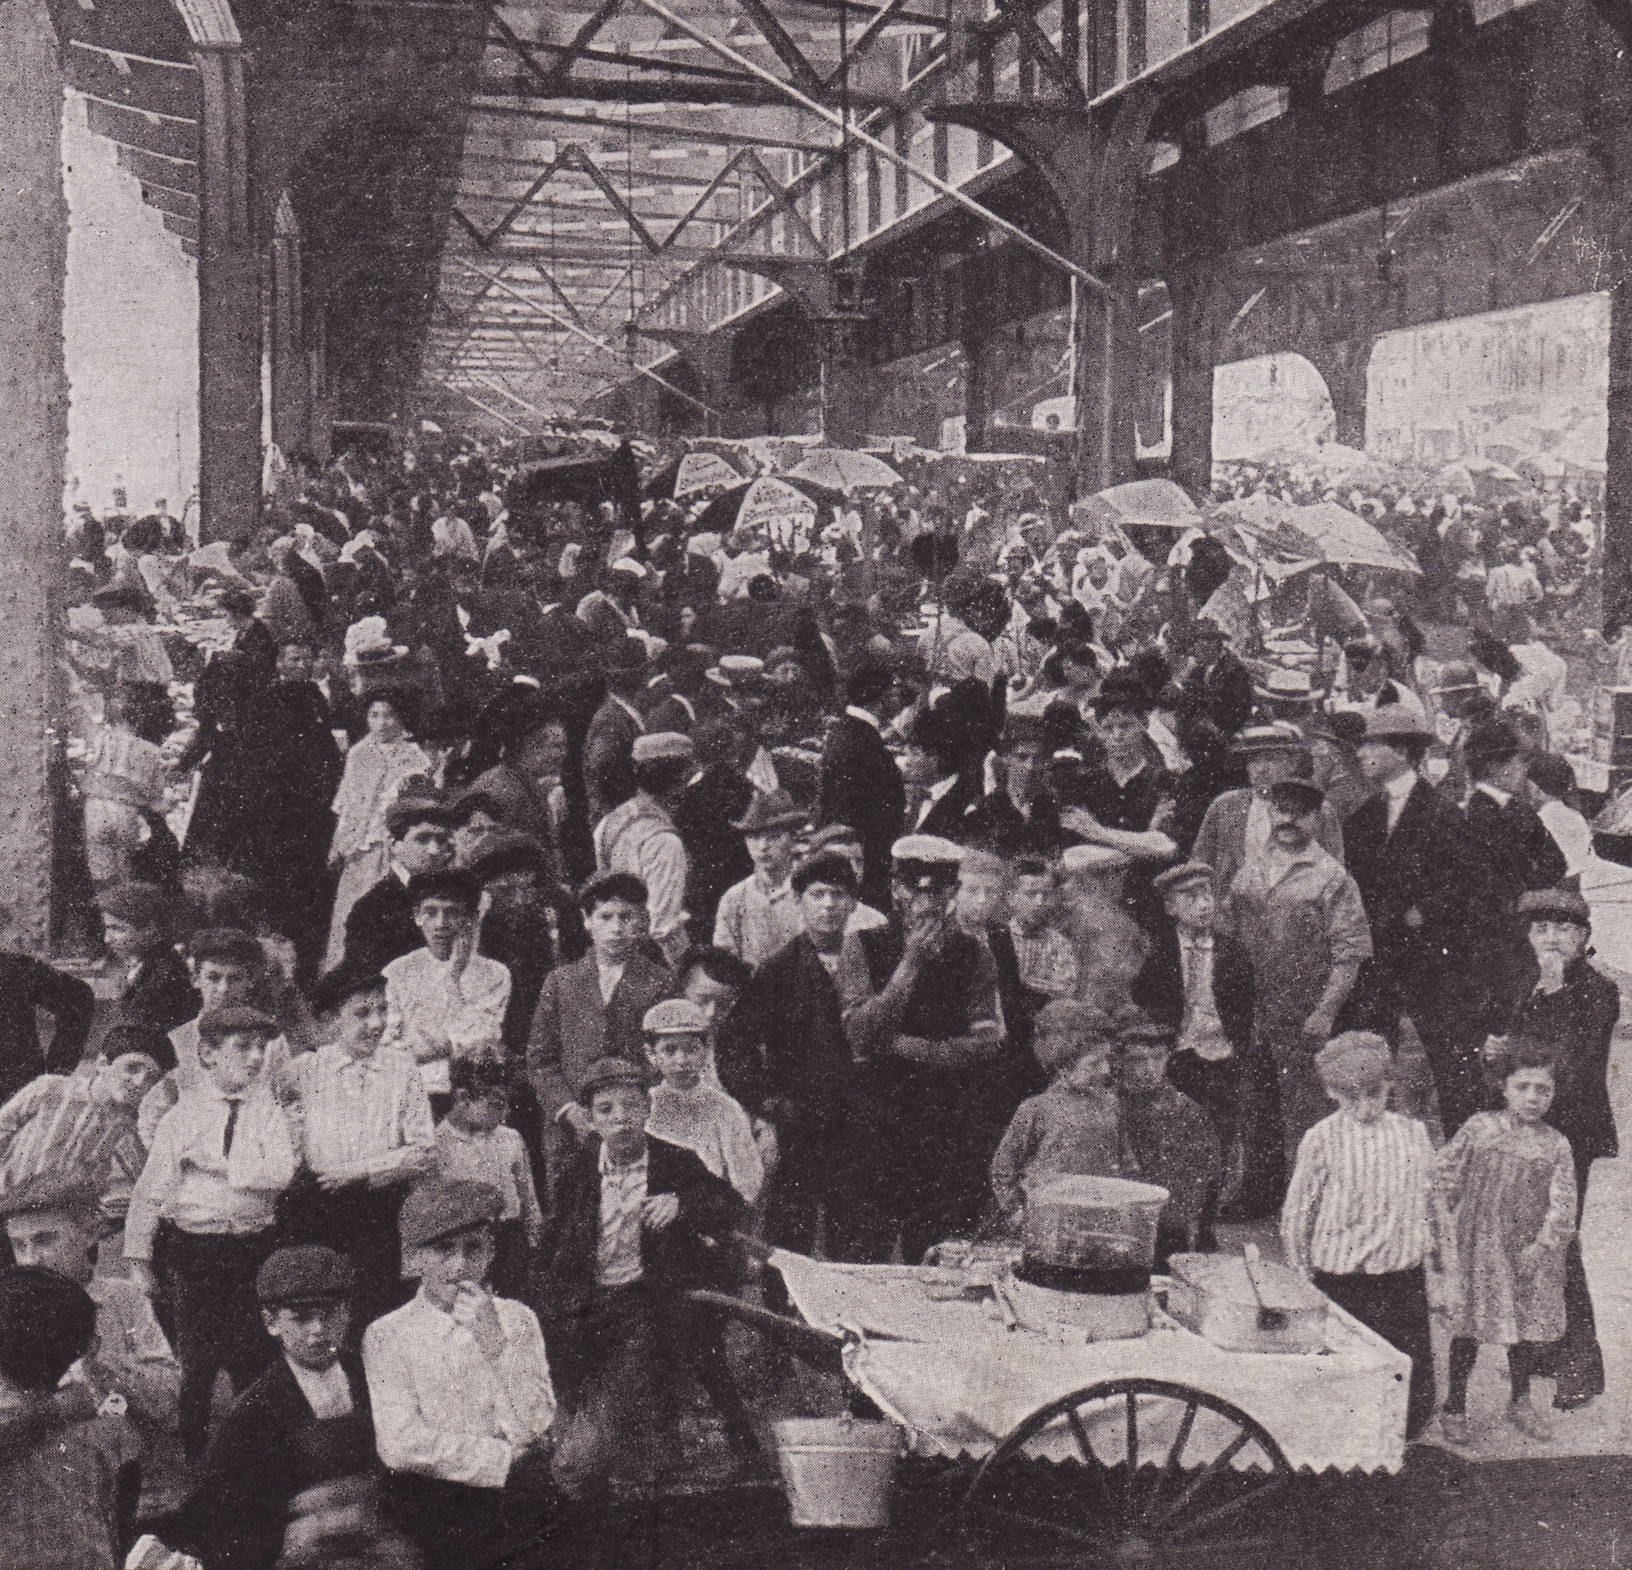 Old New York In Photos #69 - Where New York's Poor Shopped 1905